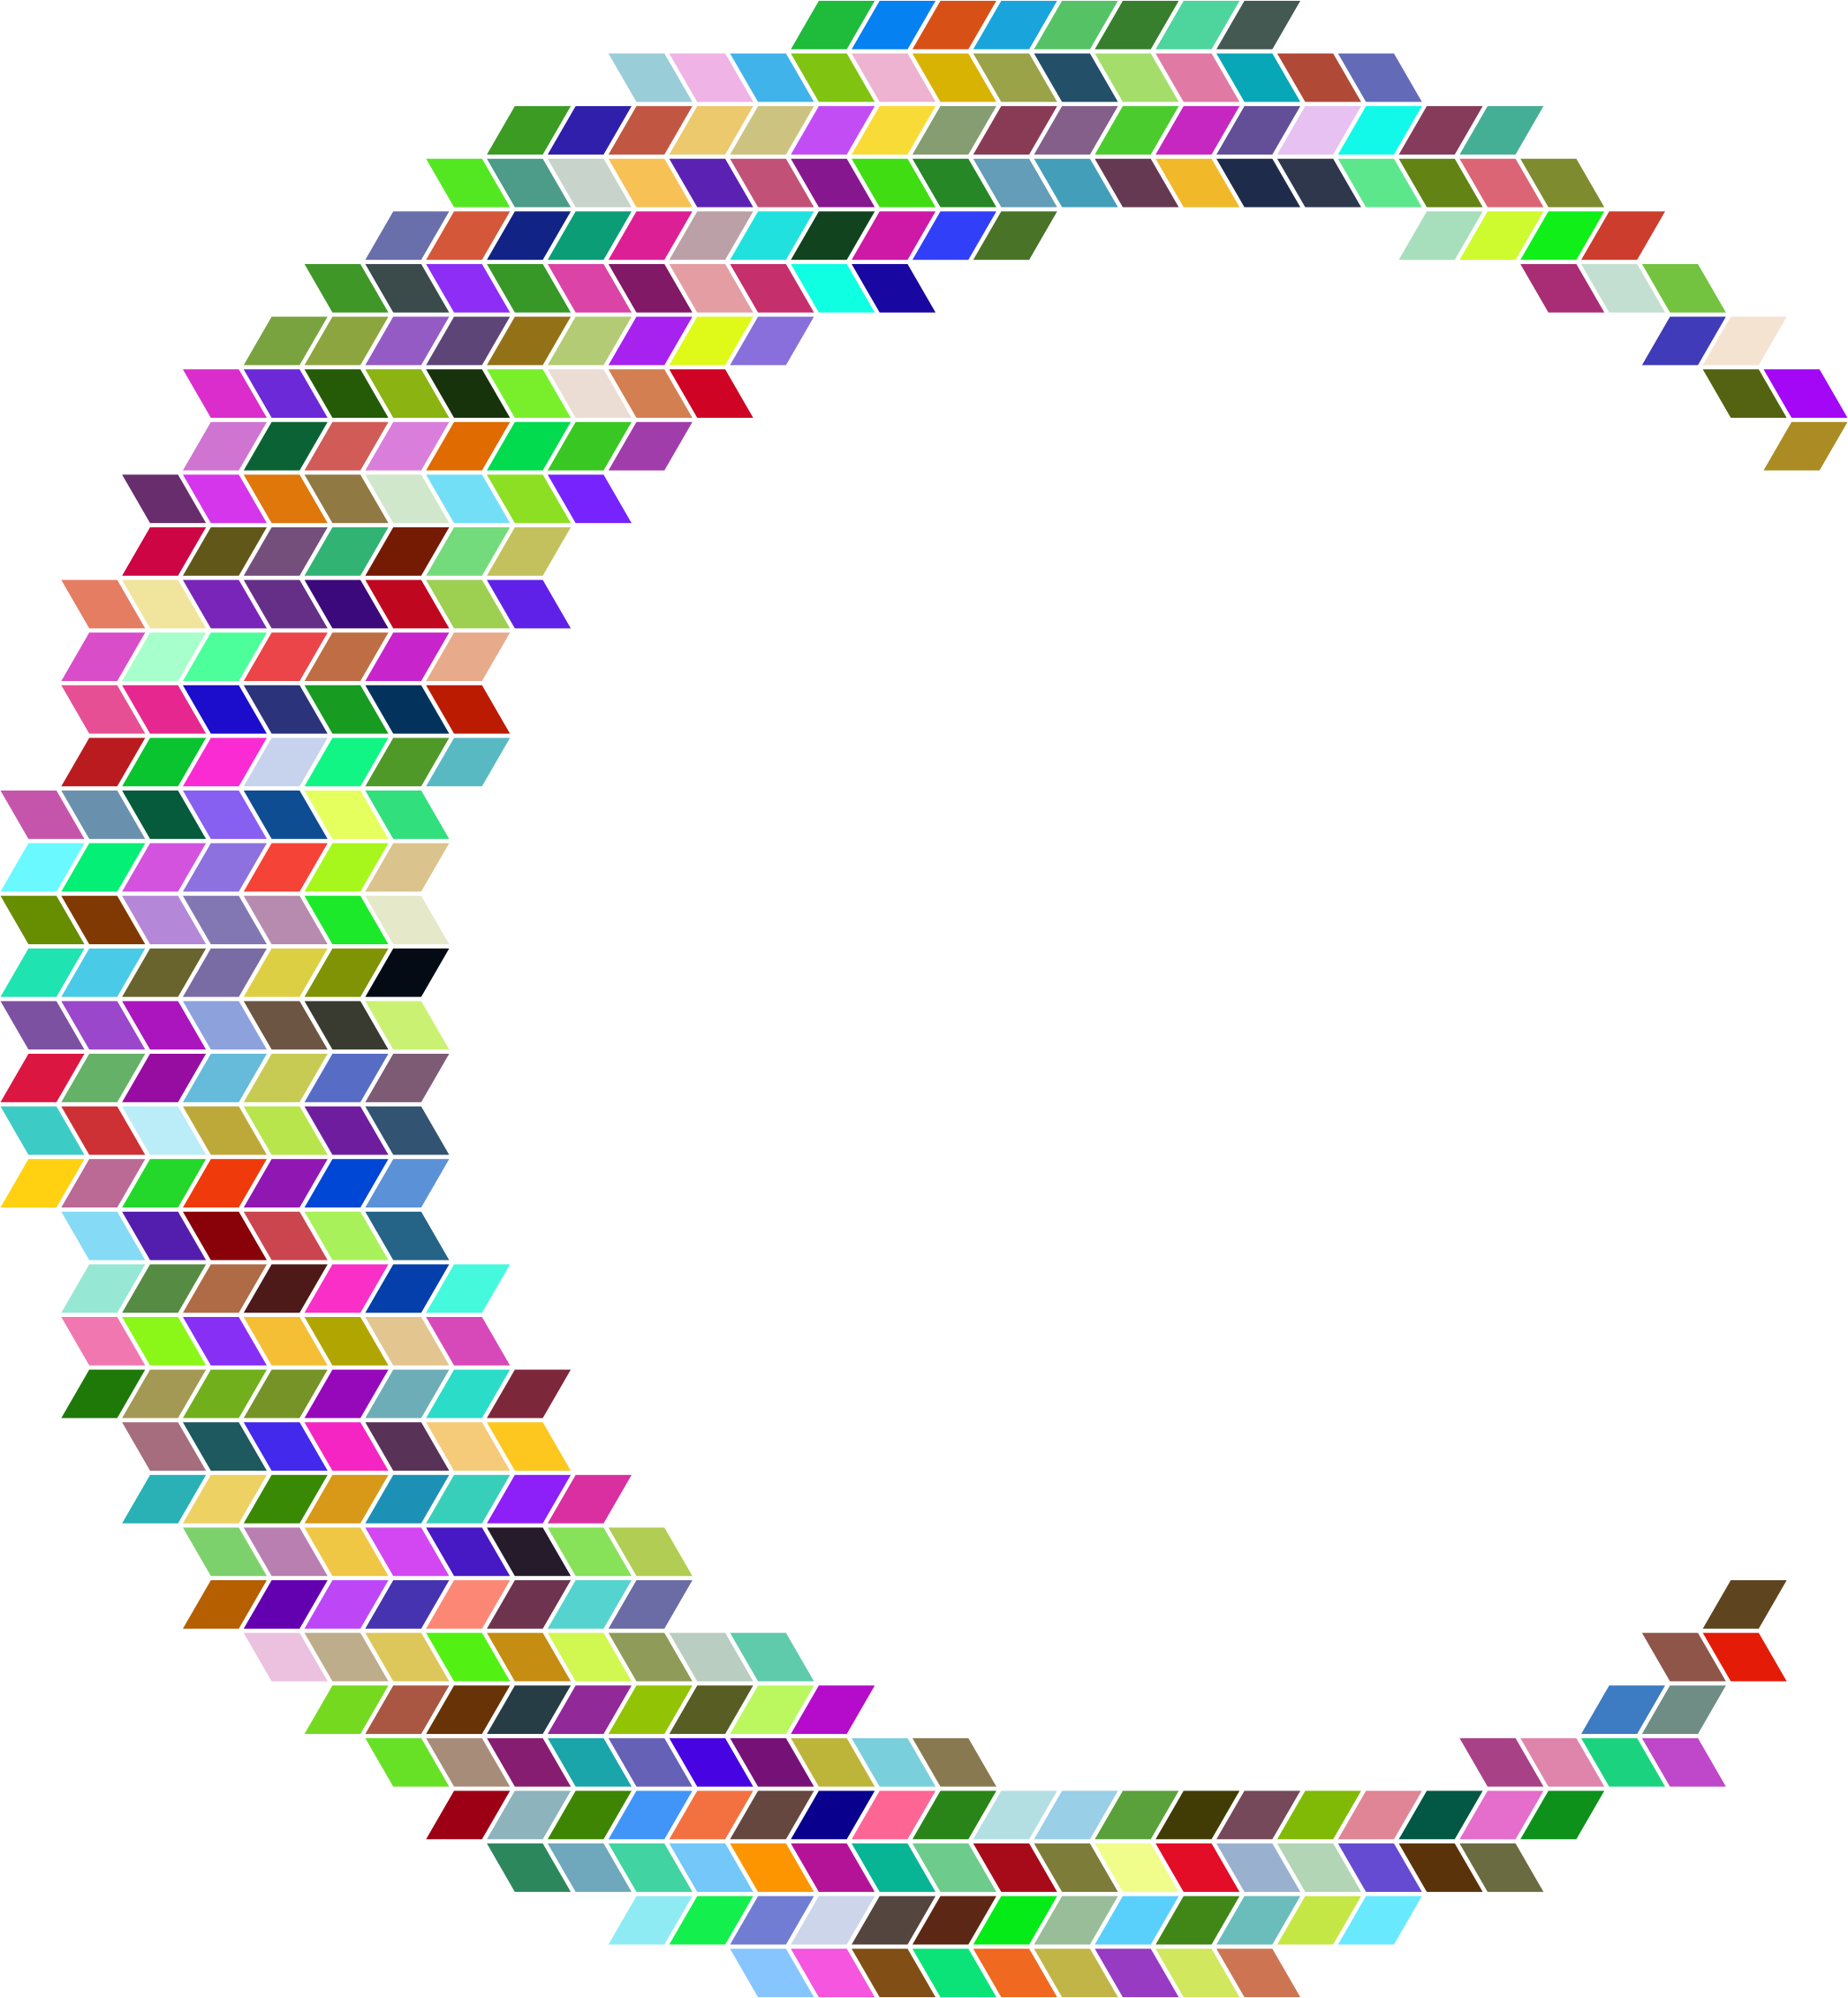 Prismatic Crescent Rhomboidal Mosaic by GDJ